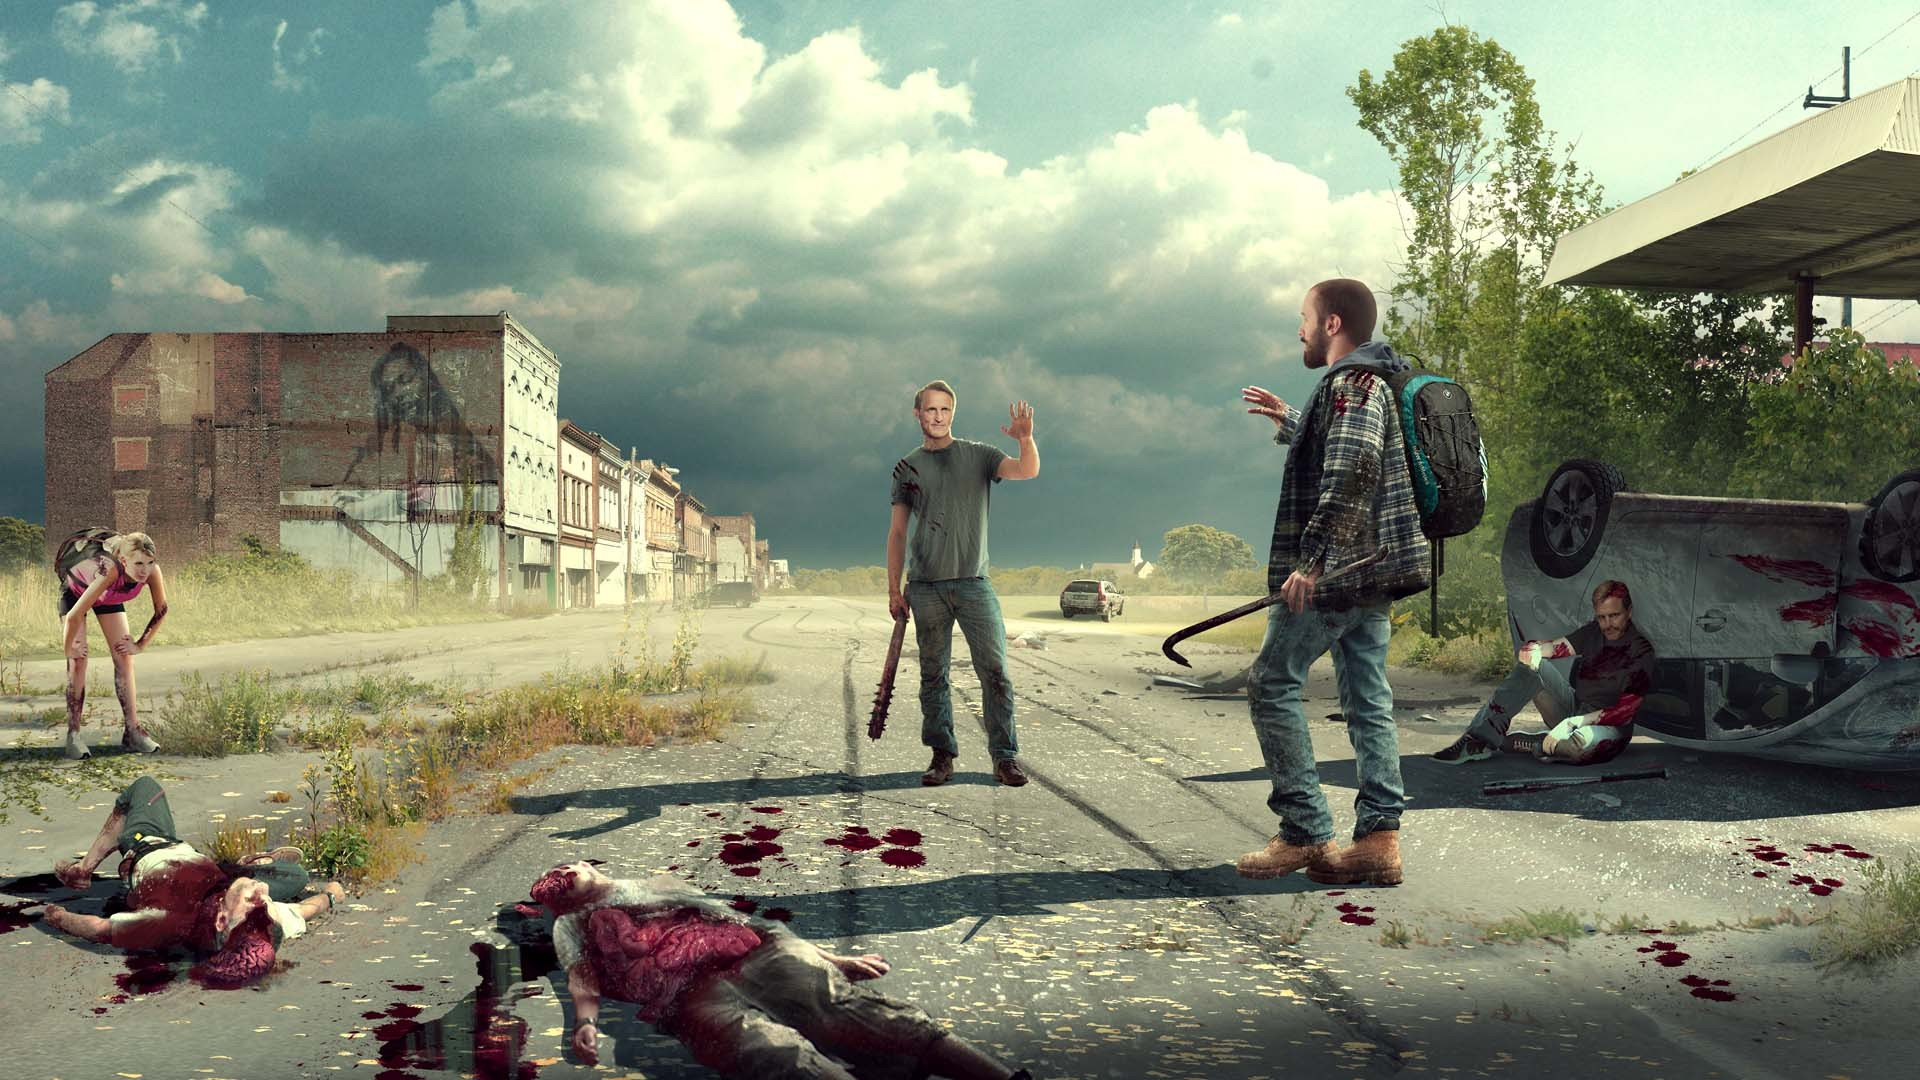 State Of Decay 2 Wallpapers High Quality | Download Free